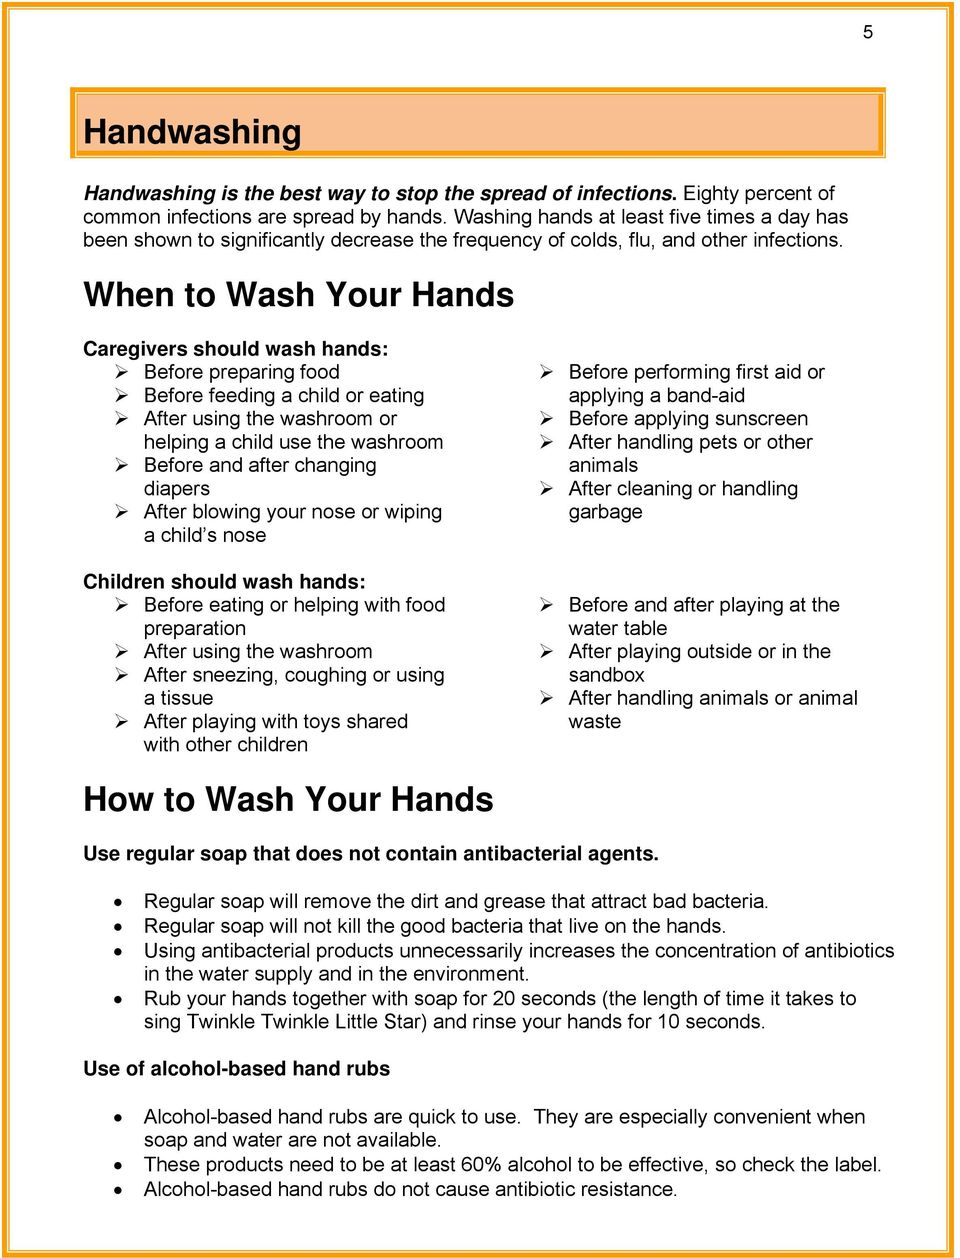 When to Wash Your Hands Caregivers should wash hands: Before preparing food Before feeding a child or eating After using the washroom or helping a child use the washroom Before and after changing